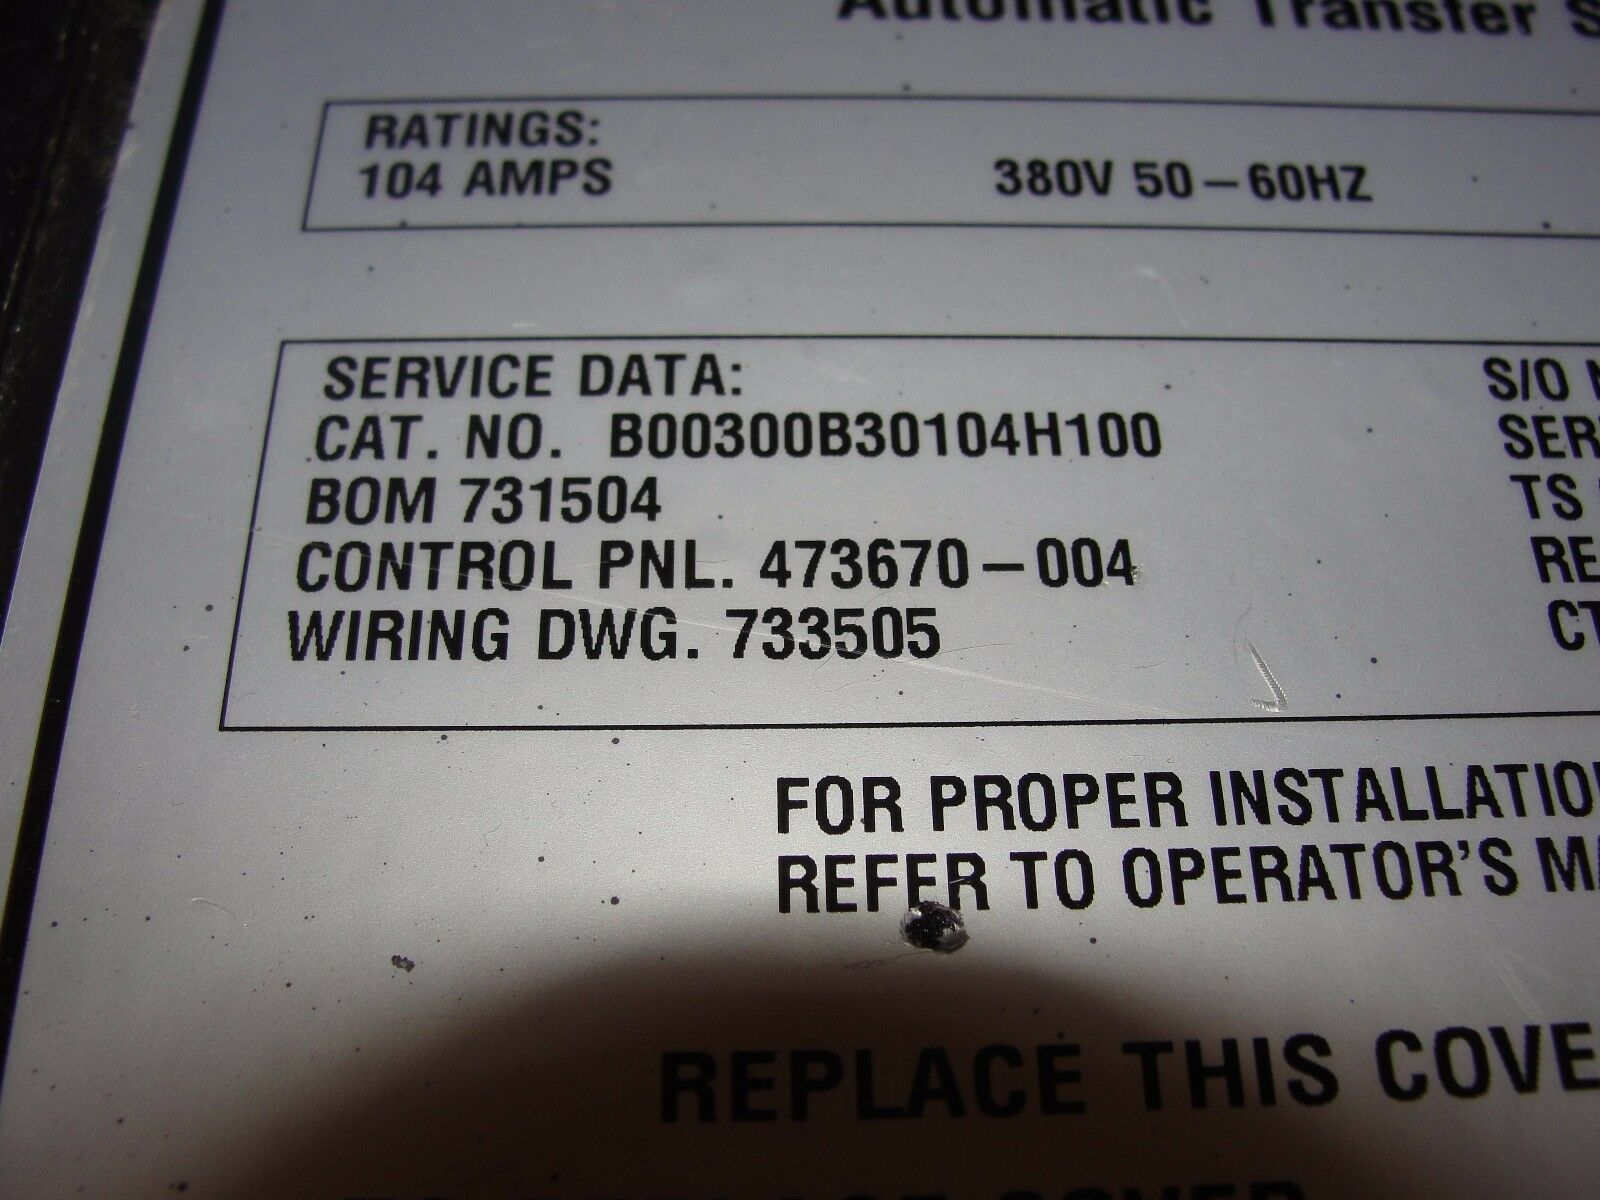 Asco Series 300 Automatic Transfer Switch 380v 50 60hz 3 Phase On Wiring 1